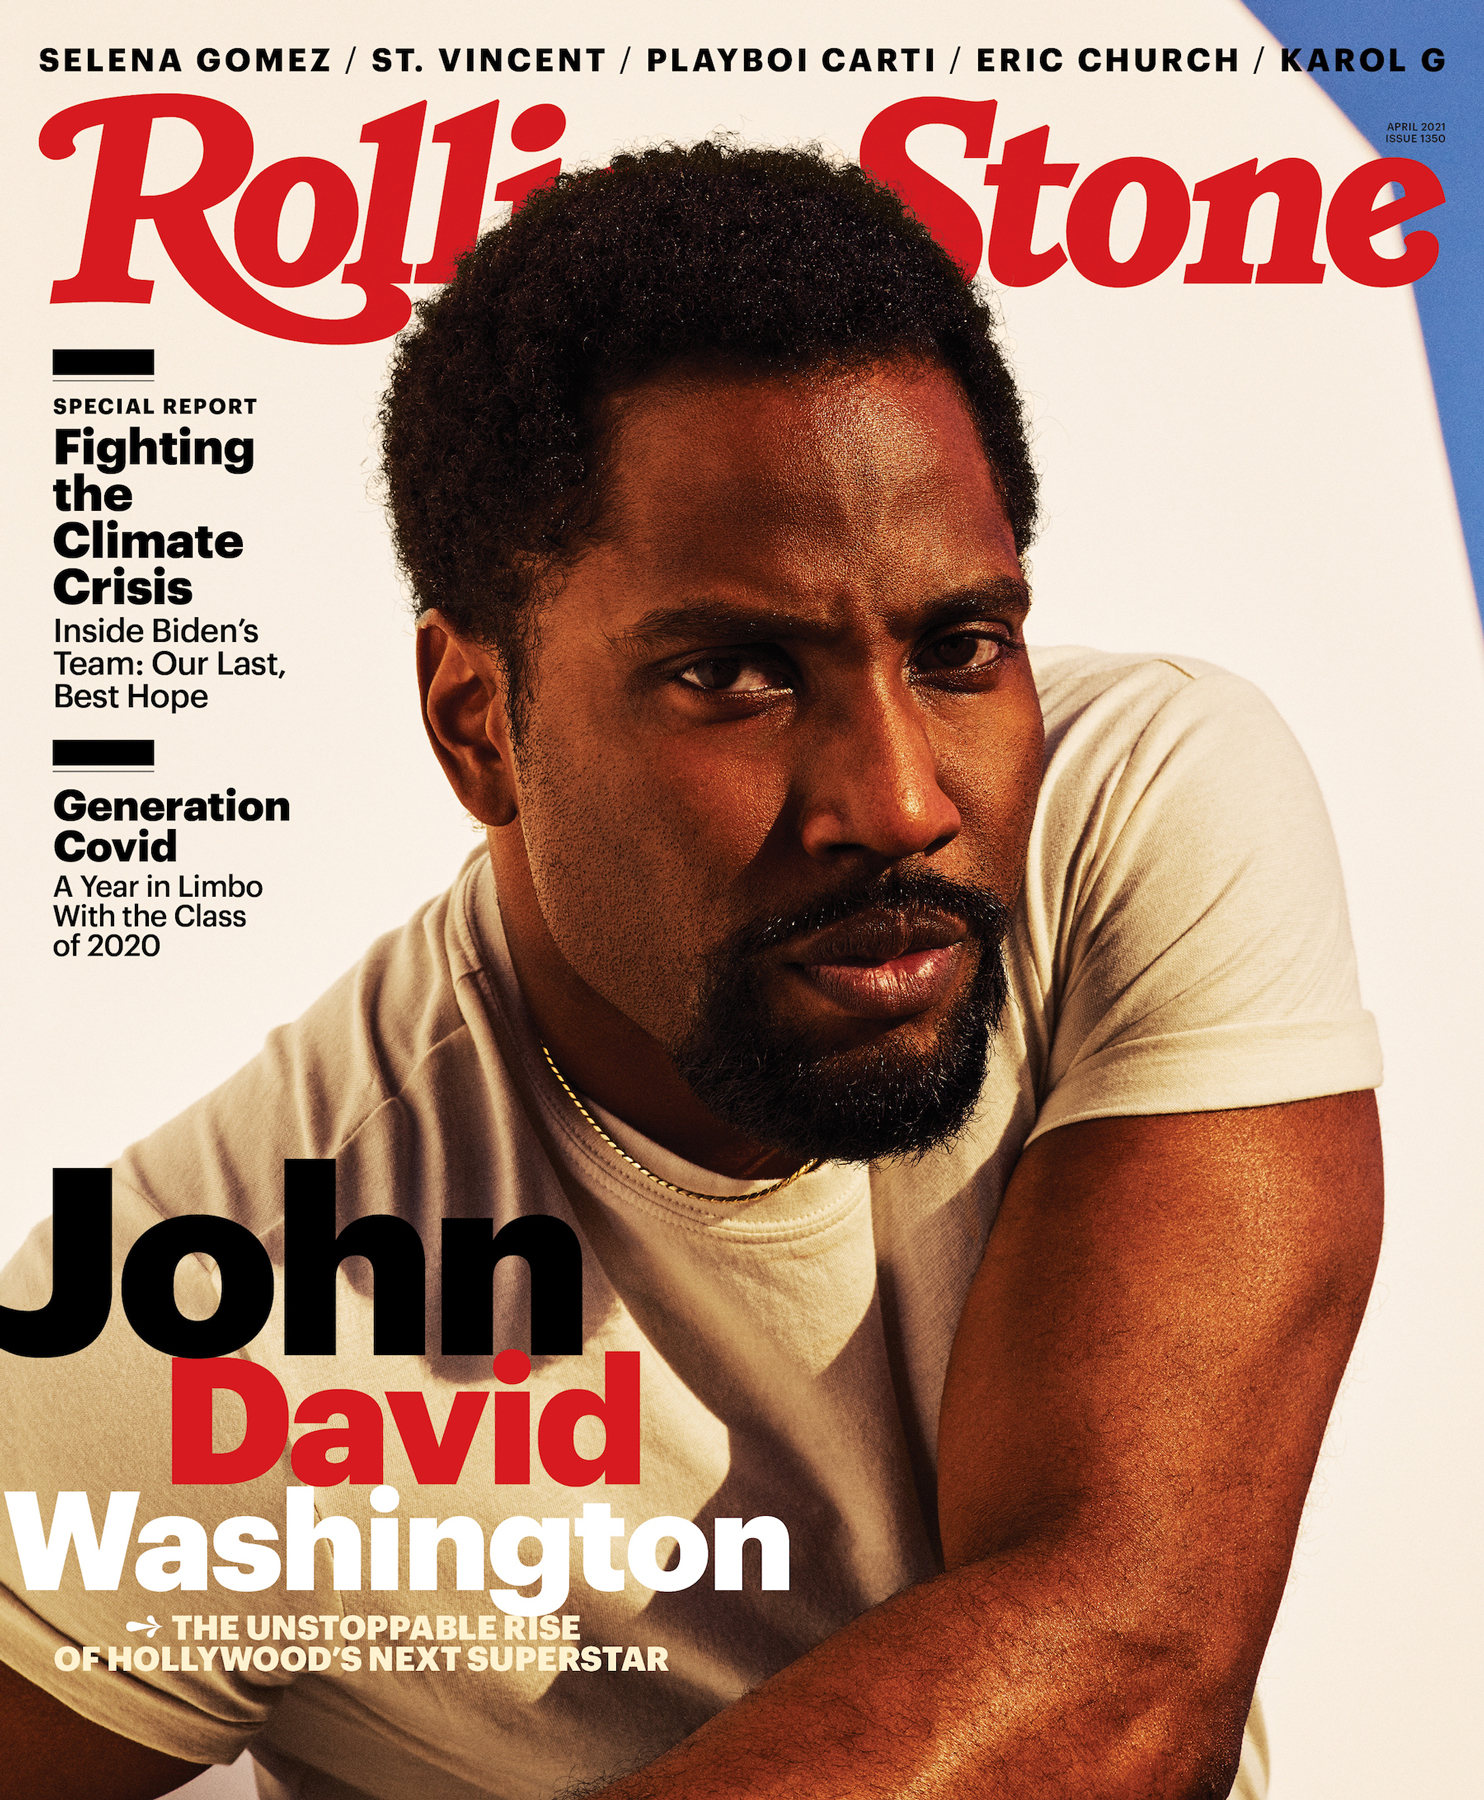 What Does Dodge Stand For Joke : dodge, stand, David, Washington, 'Malcolm, Marie,', Scenes,, Football, Rolling, Stone